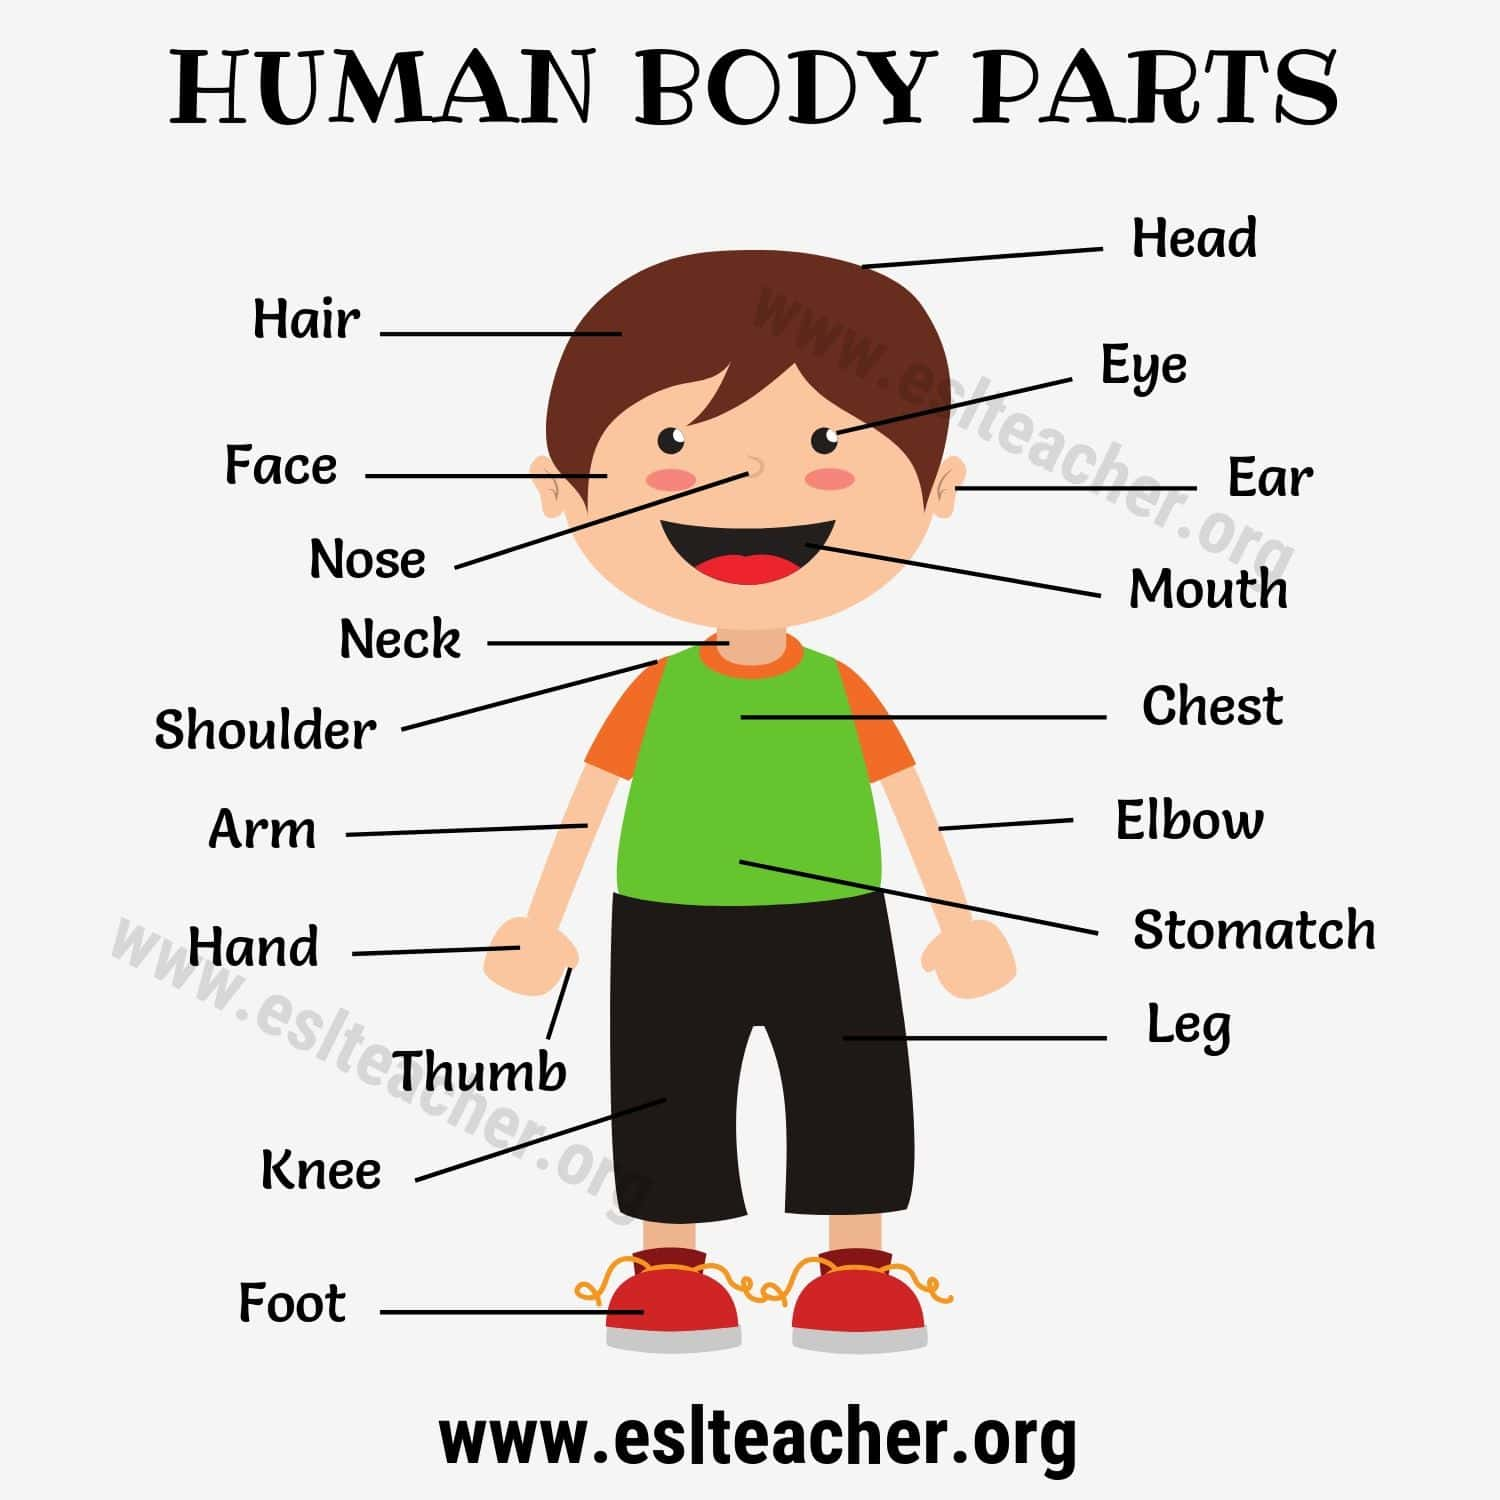 Body Parts Names 20 Proper Names For Human Body Parts